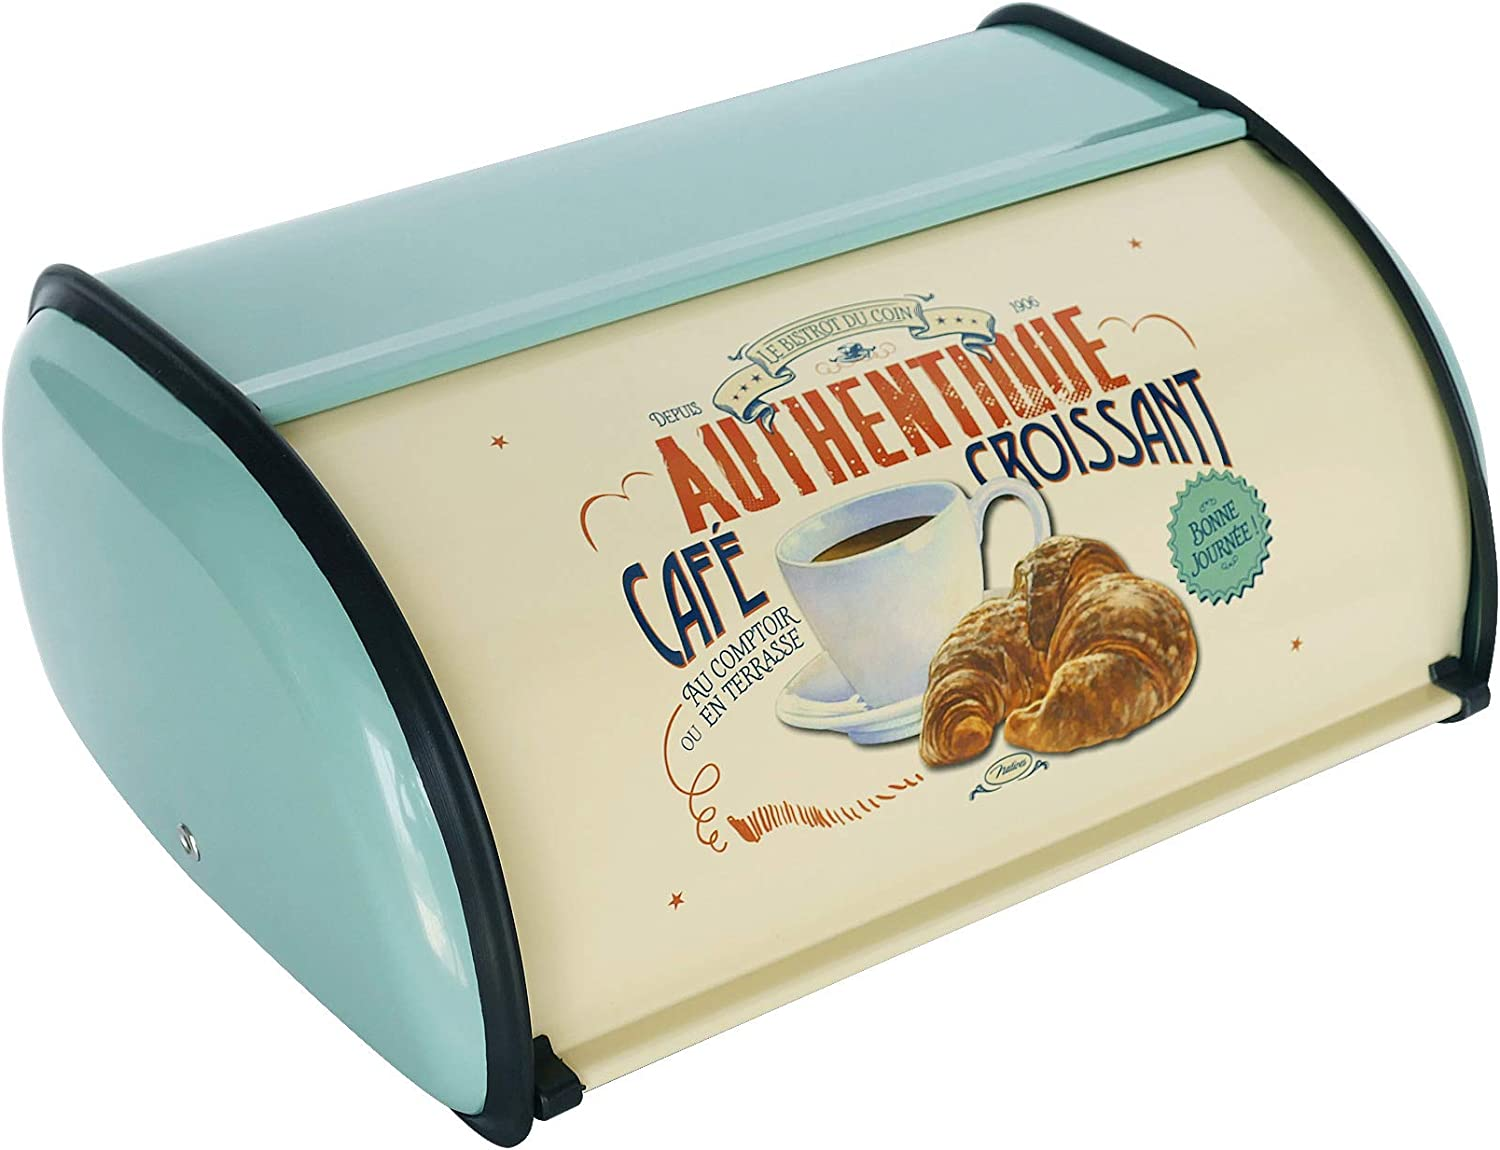 NIKKY HOME Bread Box Teal Vintage Farmhouse Bread Container with Roll Top Lid Rustic Stainless Steel Metal Bread Keeper Storage Bin for Kitchen Counter Food Cookies Holder Mother's Day Gift, Teal